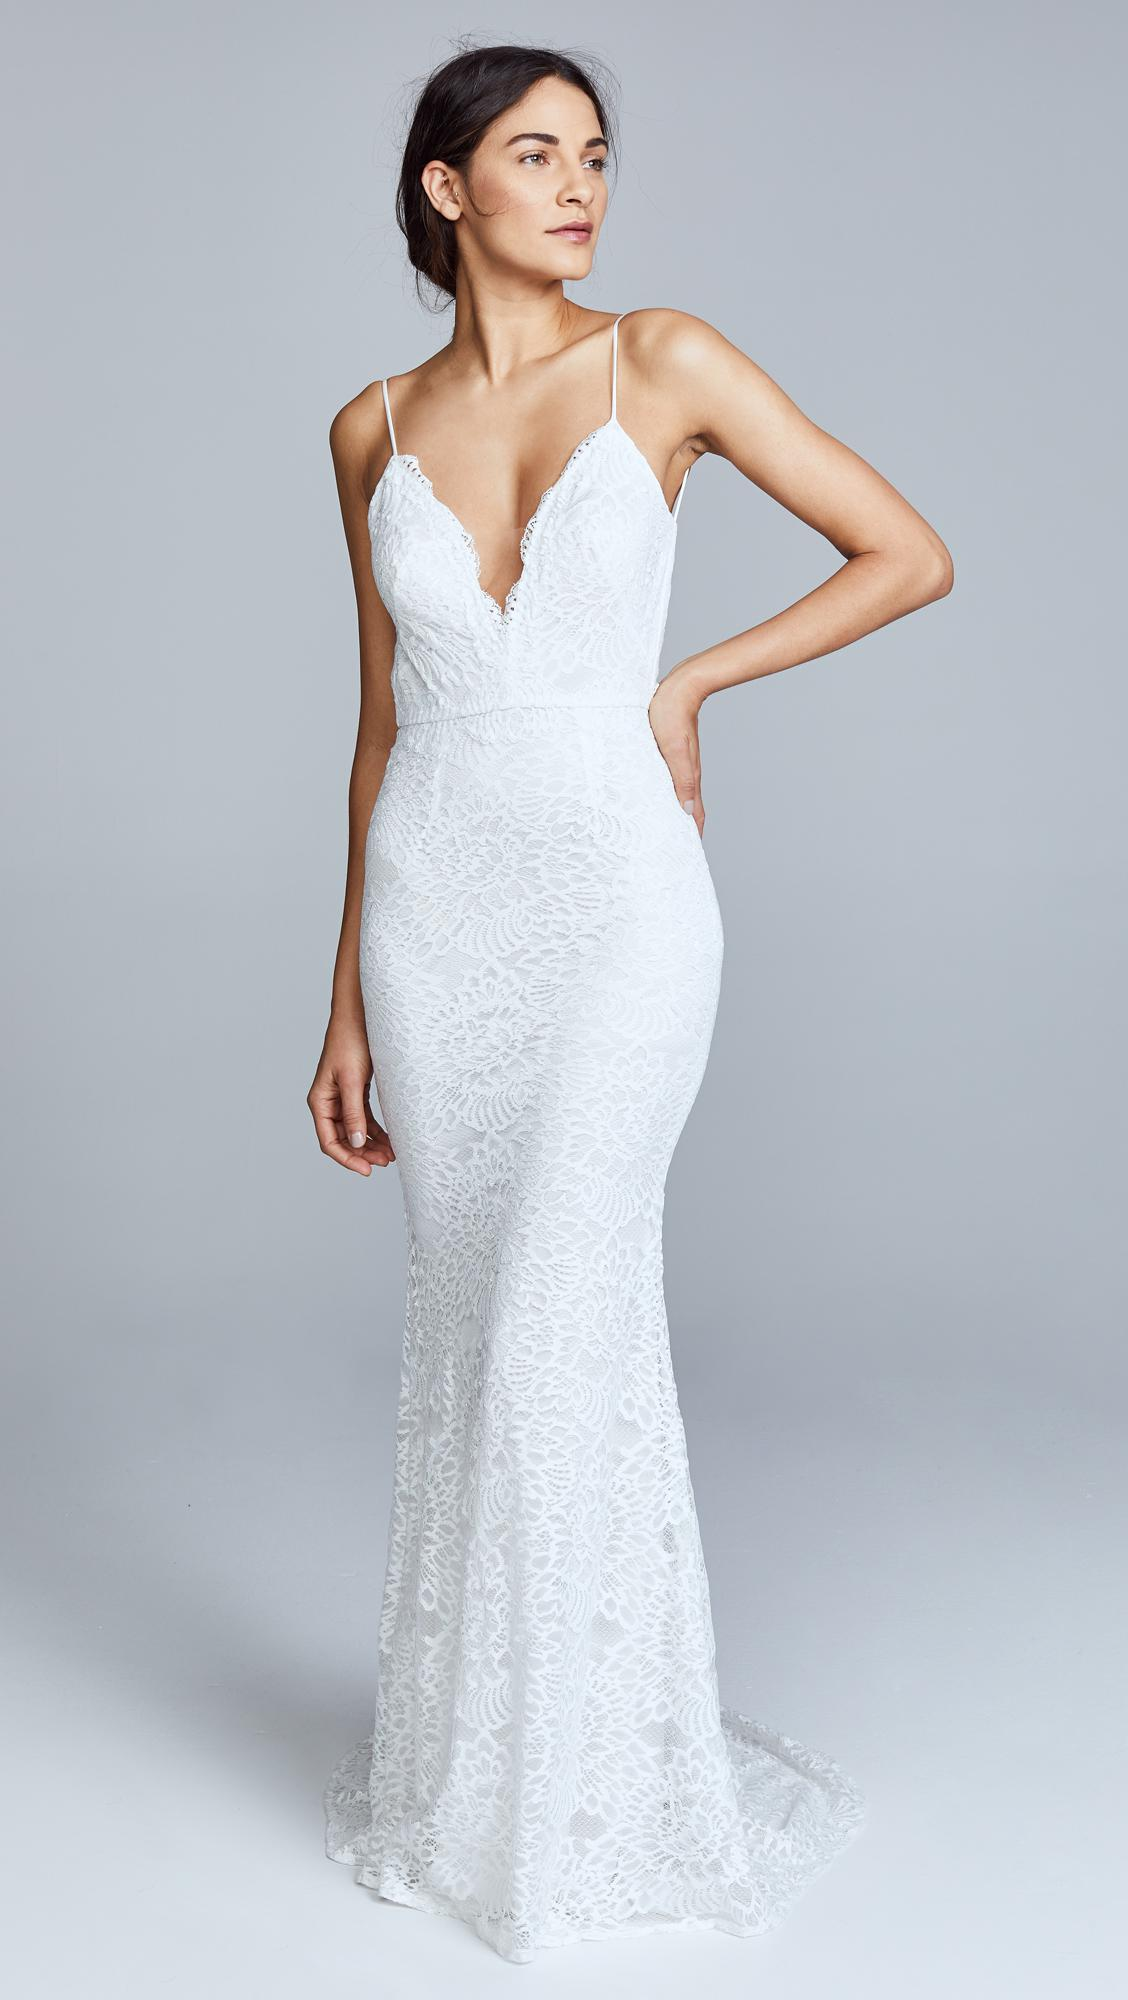 Lyst - Katie may Noel And Jean By Constance Gown in White